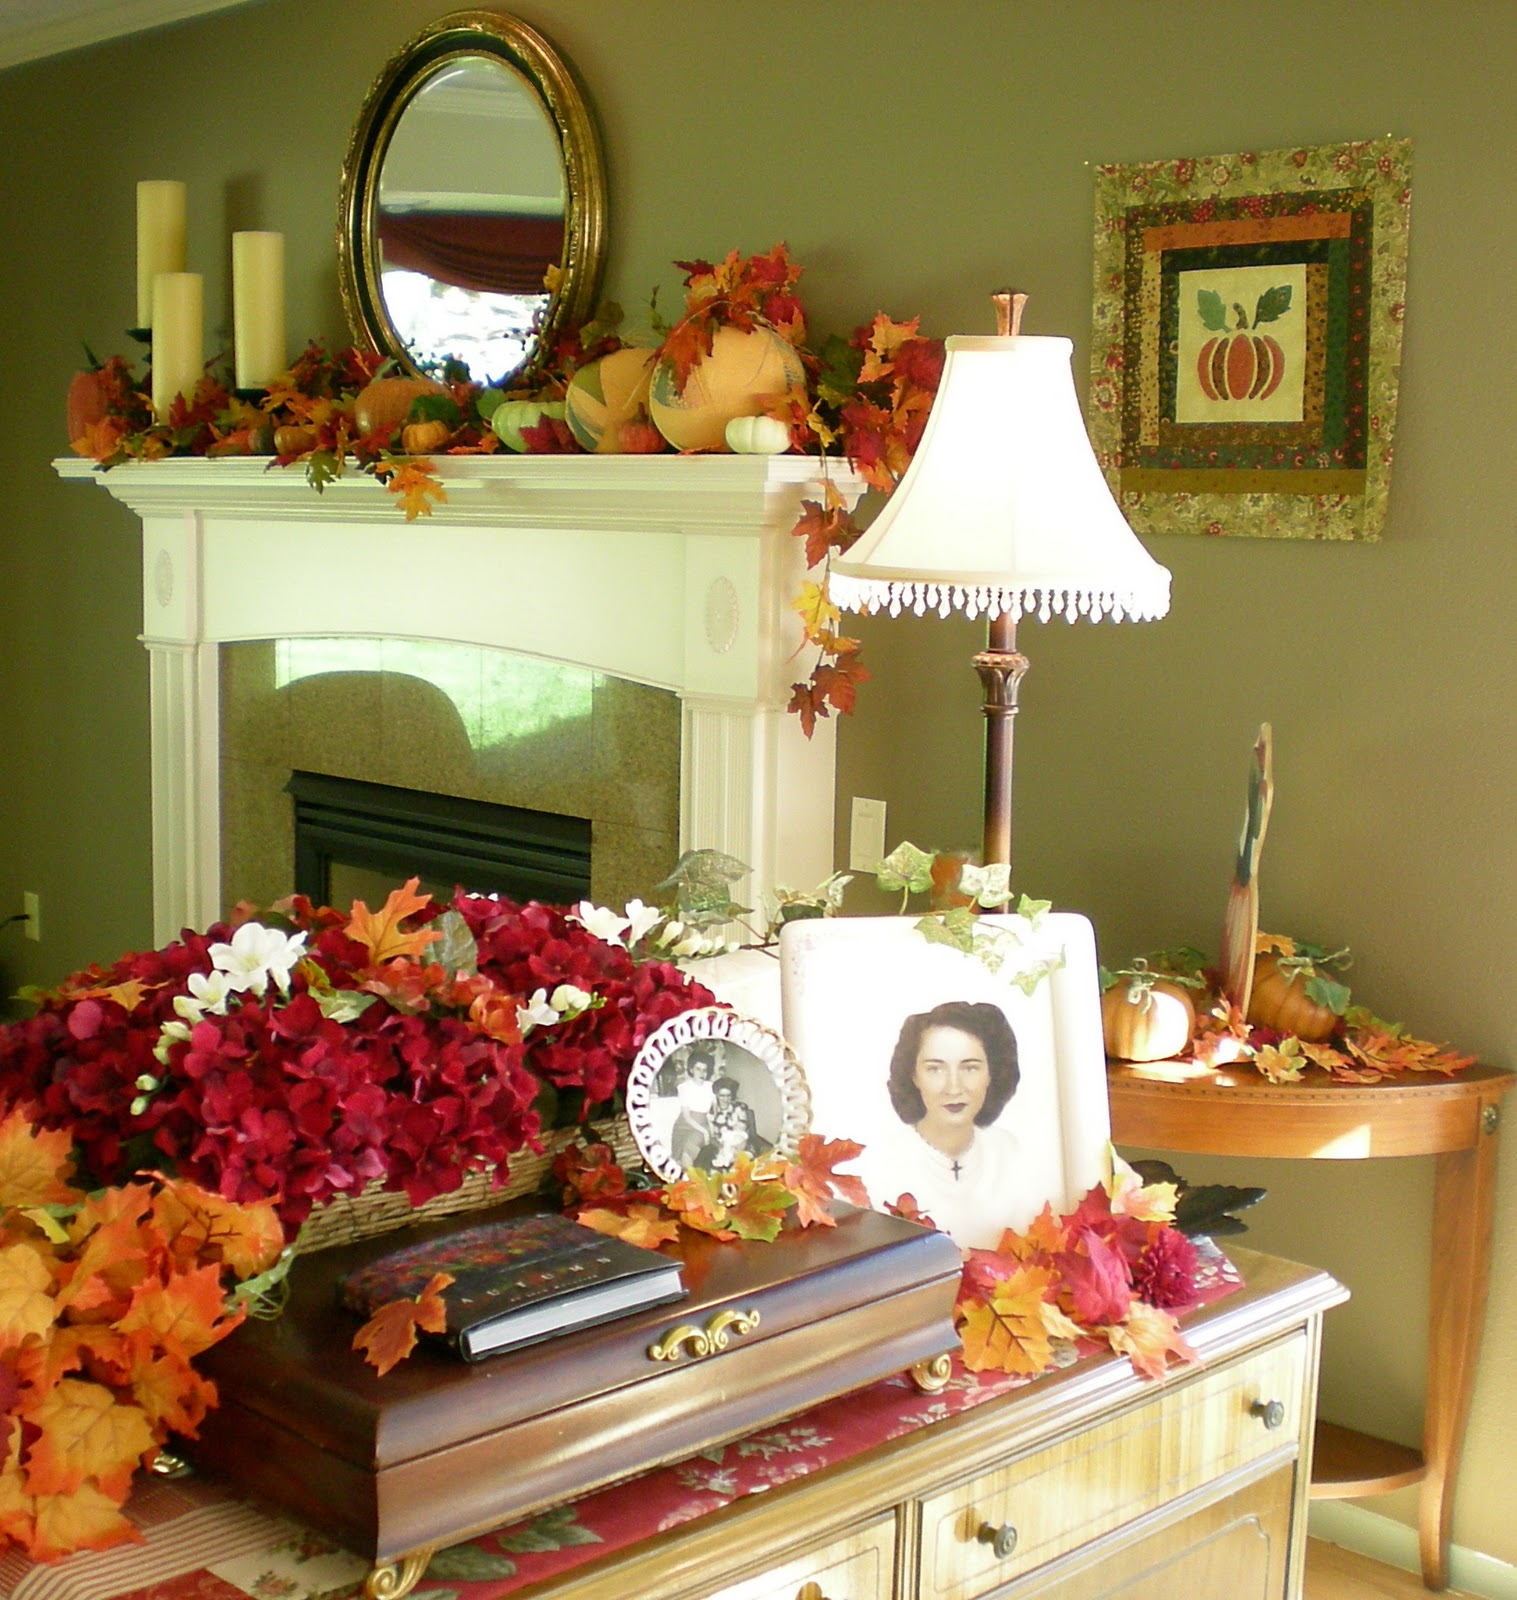 Fall Home Decorations: Fall Decorating Ideas Pictures, Photos, And Images For